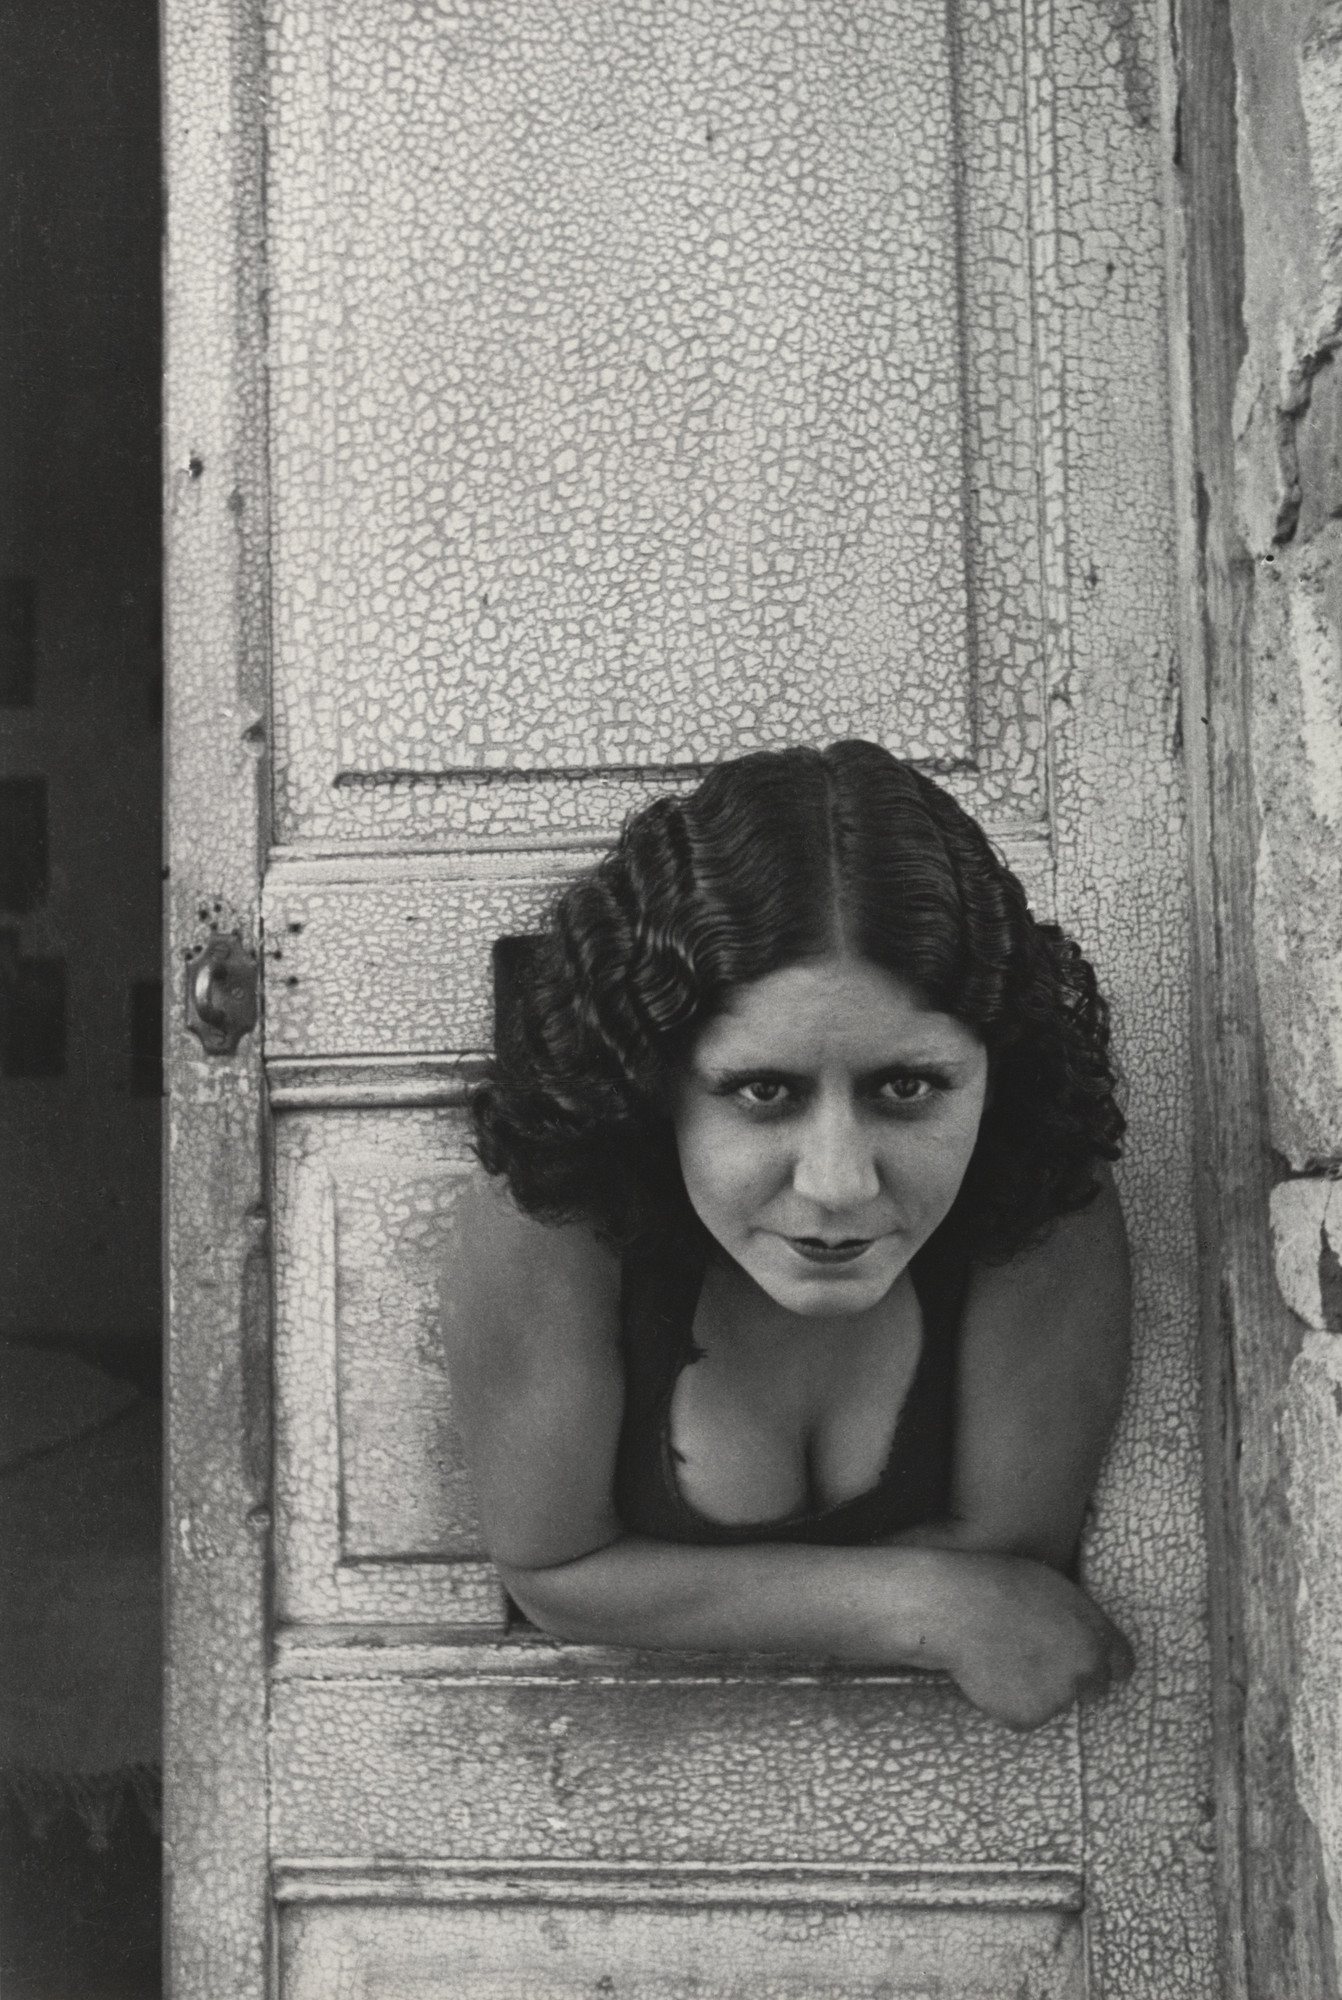 Henri Cartier-Bresson. Calle Cuauhtemoctzin, Mexico City. 1934-35 (printed 1947 by LECO Photo Services)